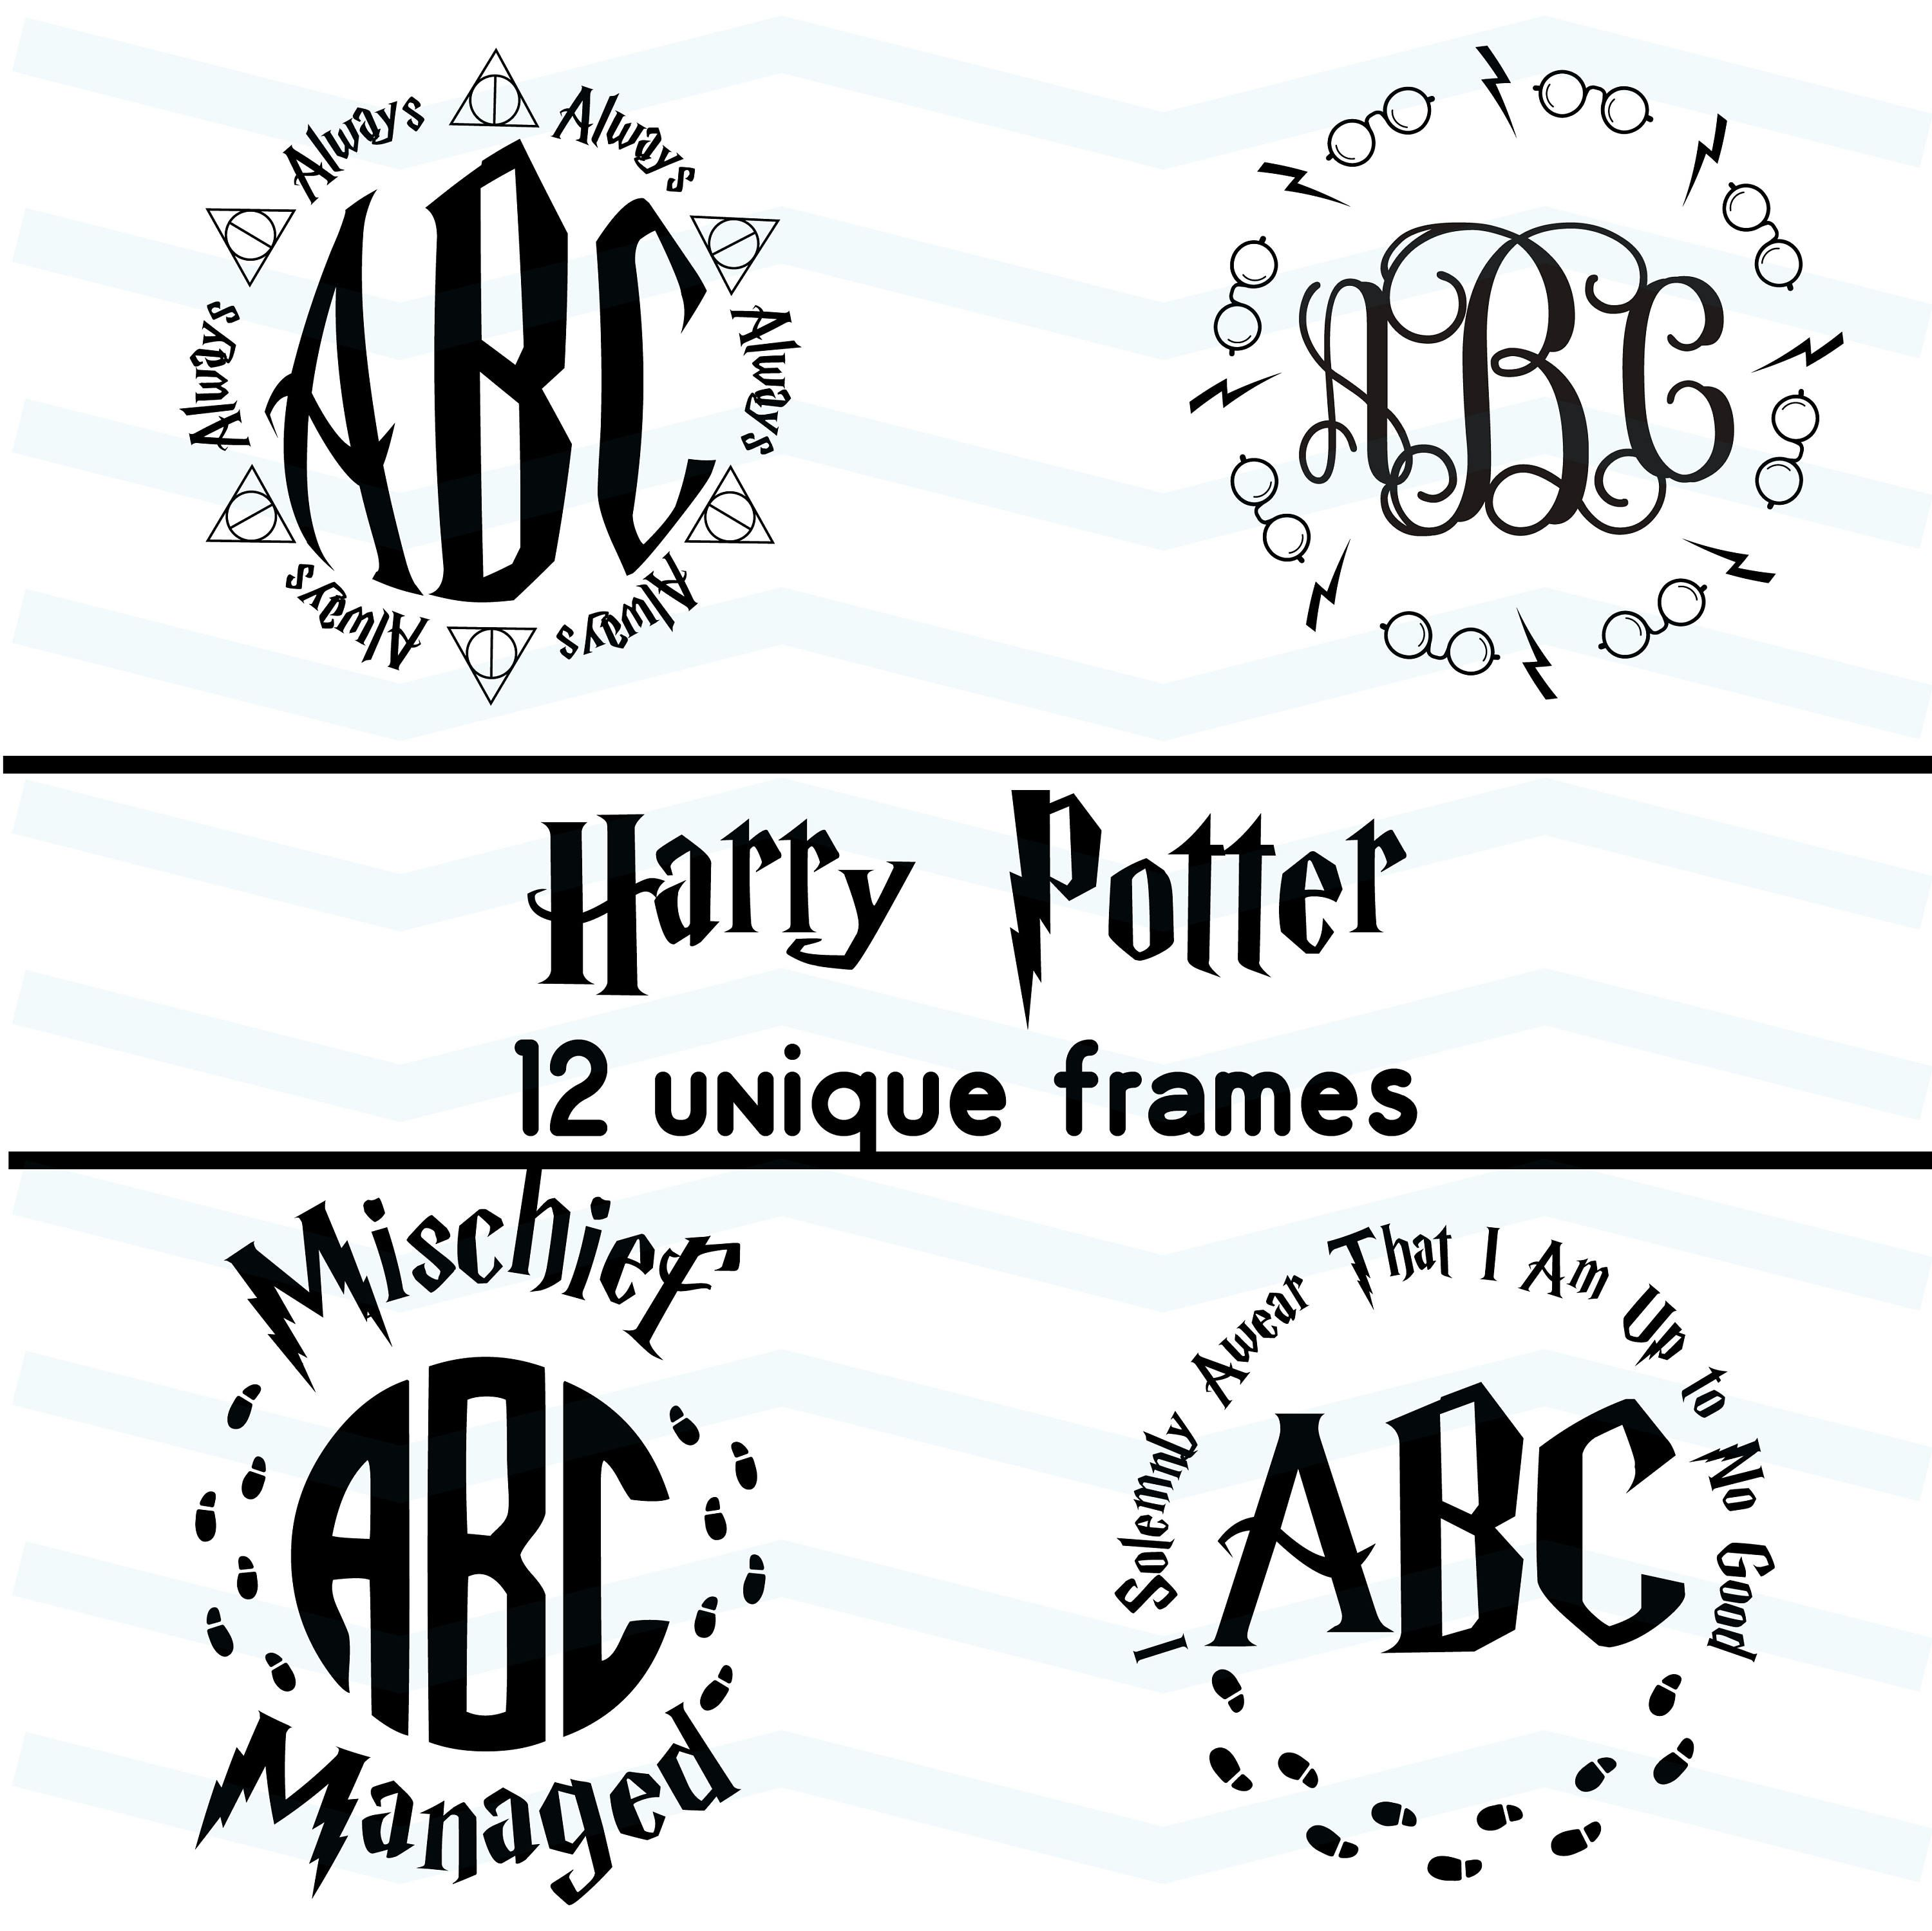 Harry Potter Round Frames Svg Sorting Hat Svg Snitch Svg Expecto Patronum Deathly Hallows Potter Clip Cricut Silhouette Monogram Silhouette Cameo Projects